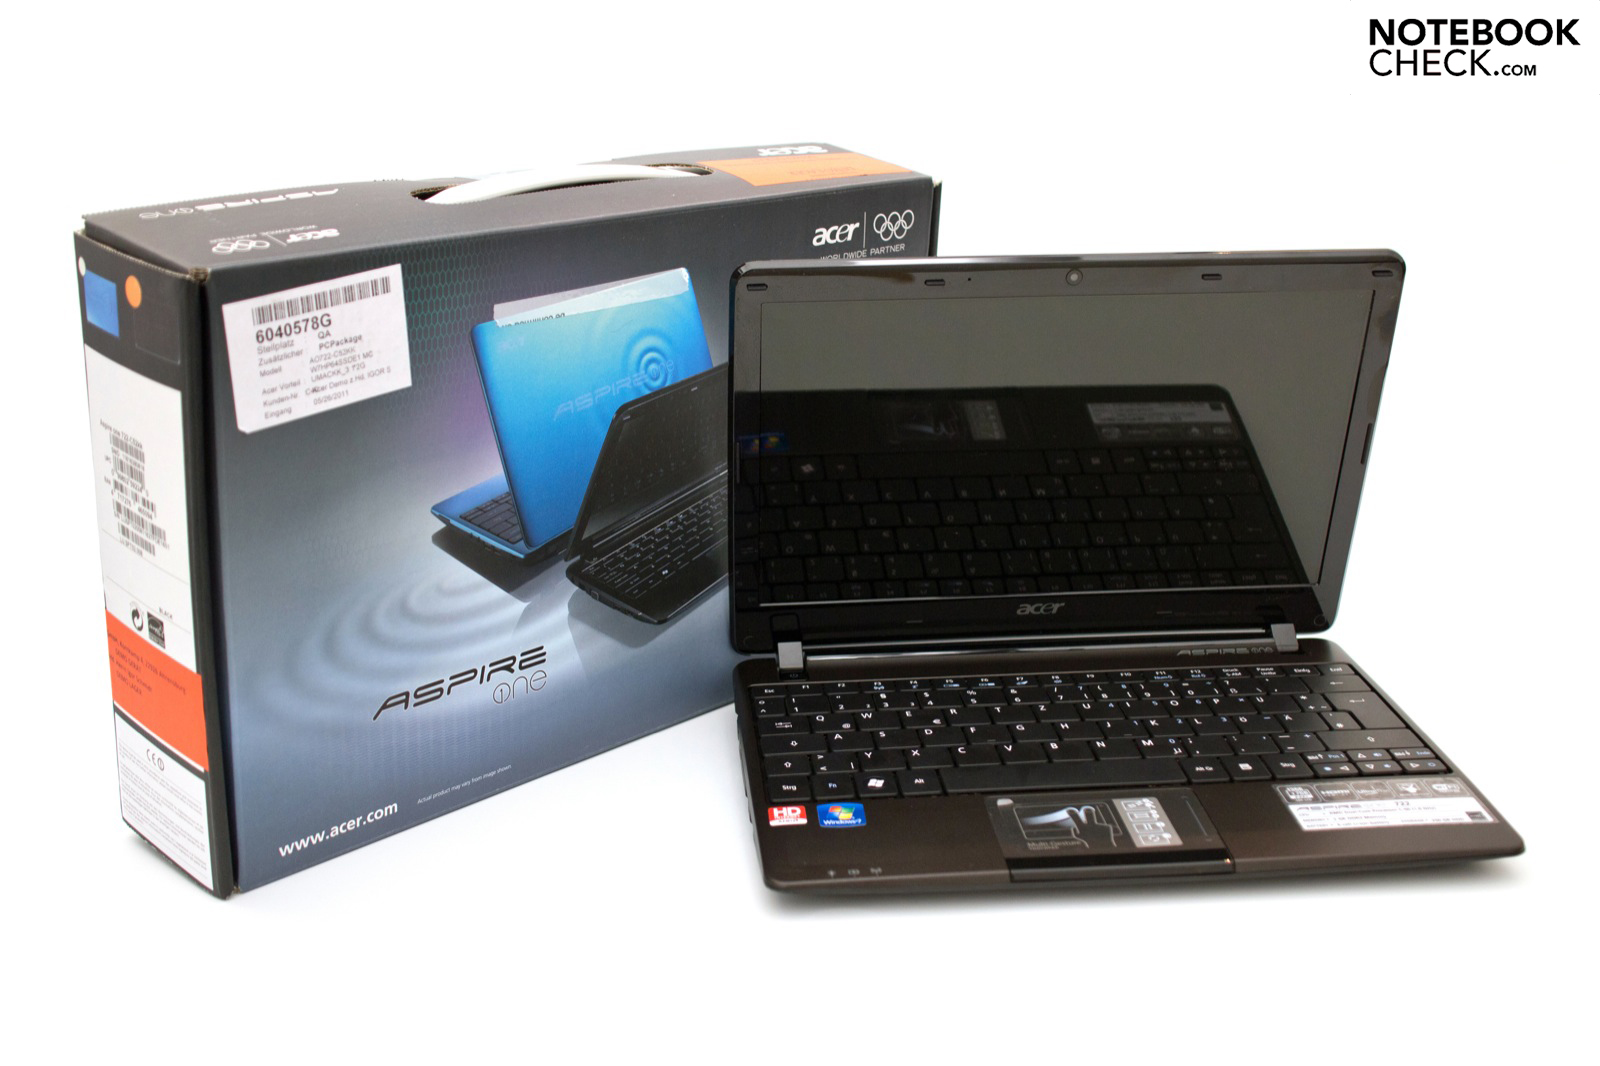 Análise Do Netbook Acer Aspire One 722 Notebookcheckinfo